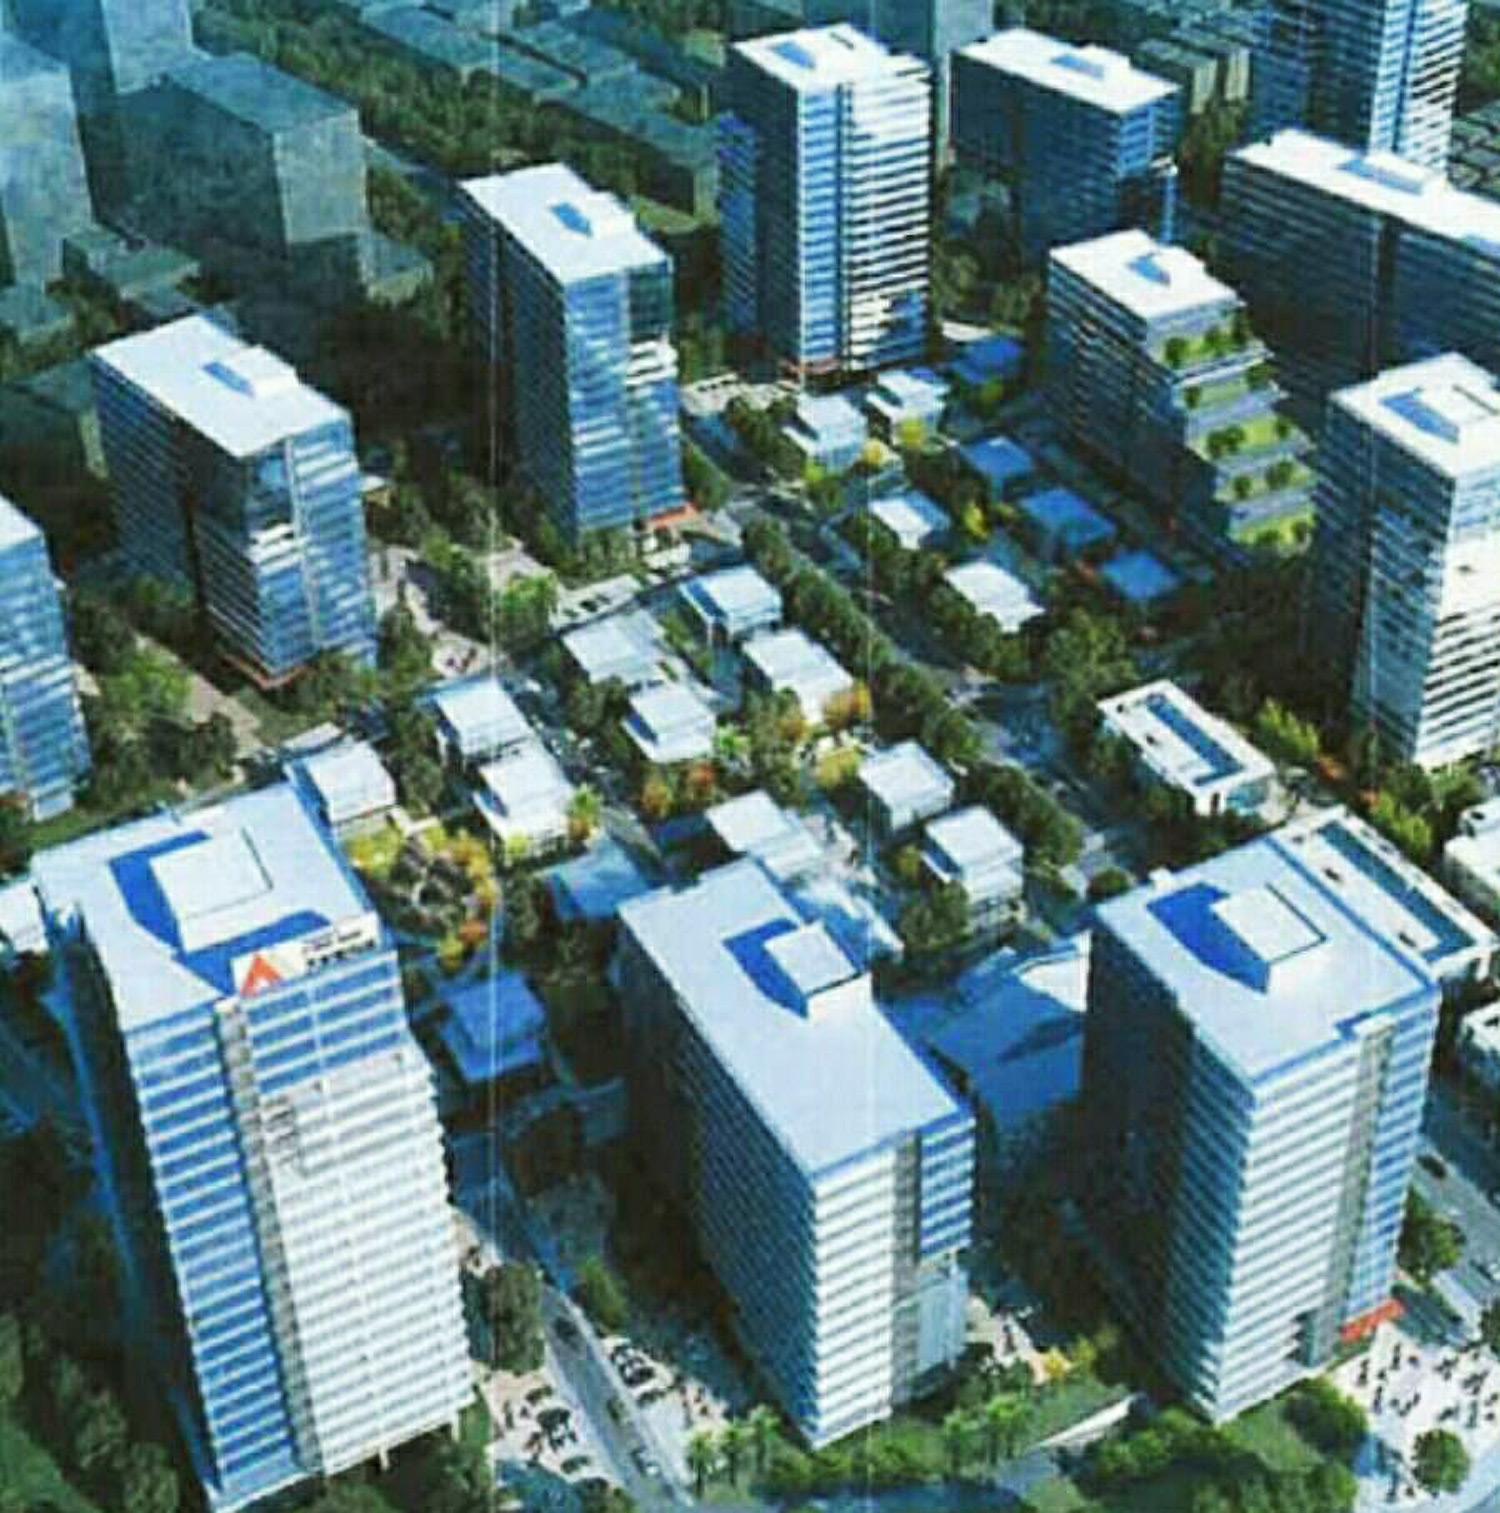 Kokko Chinatown project sparks concerns in Tak